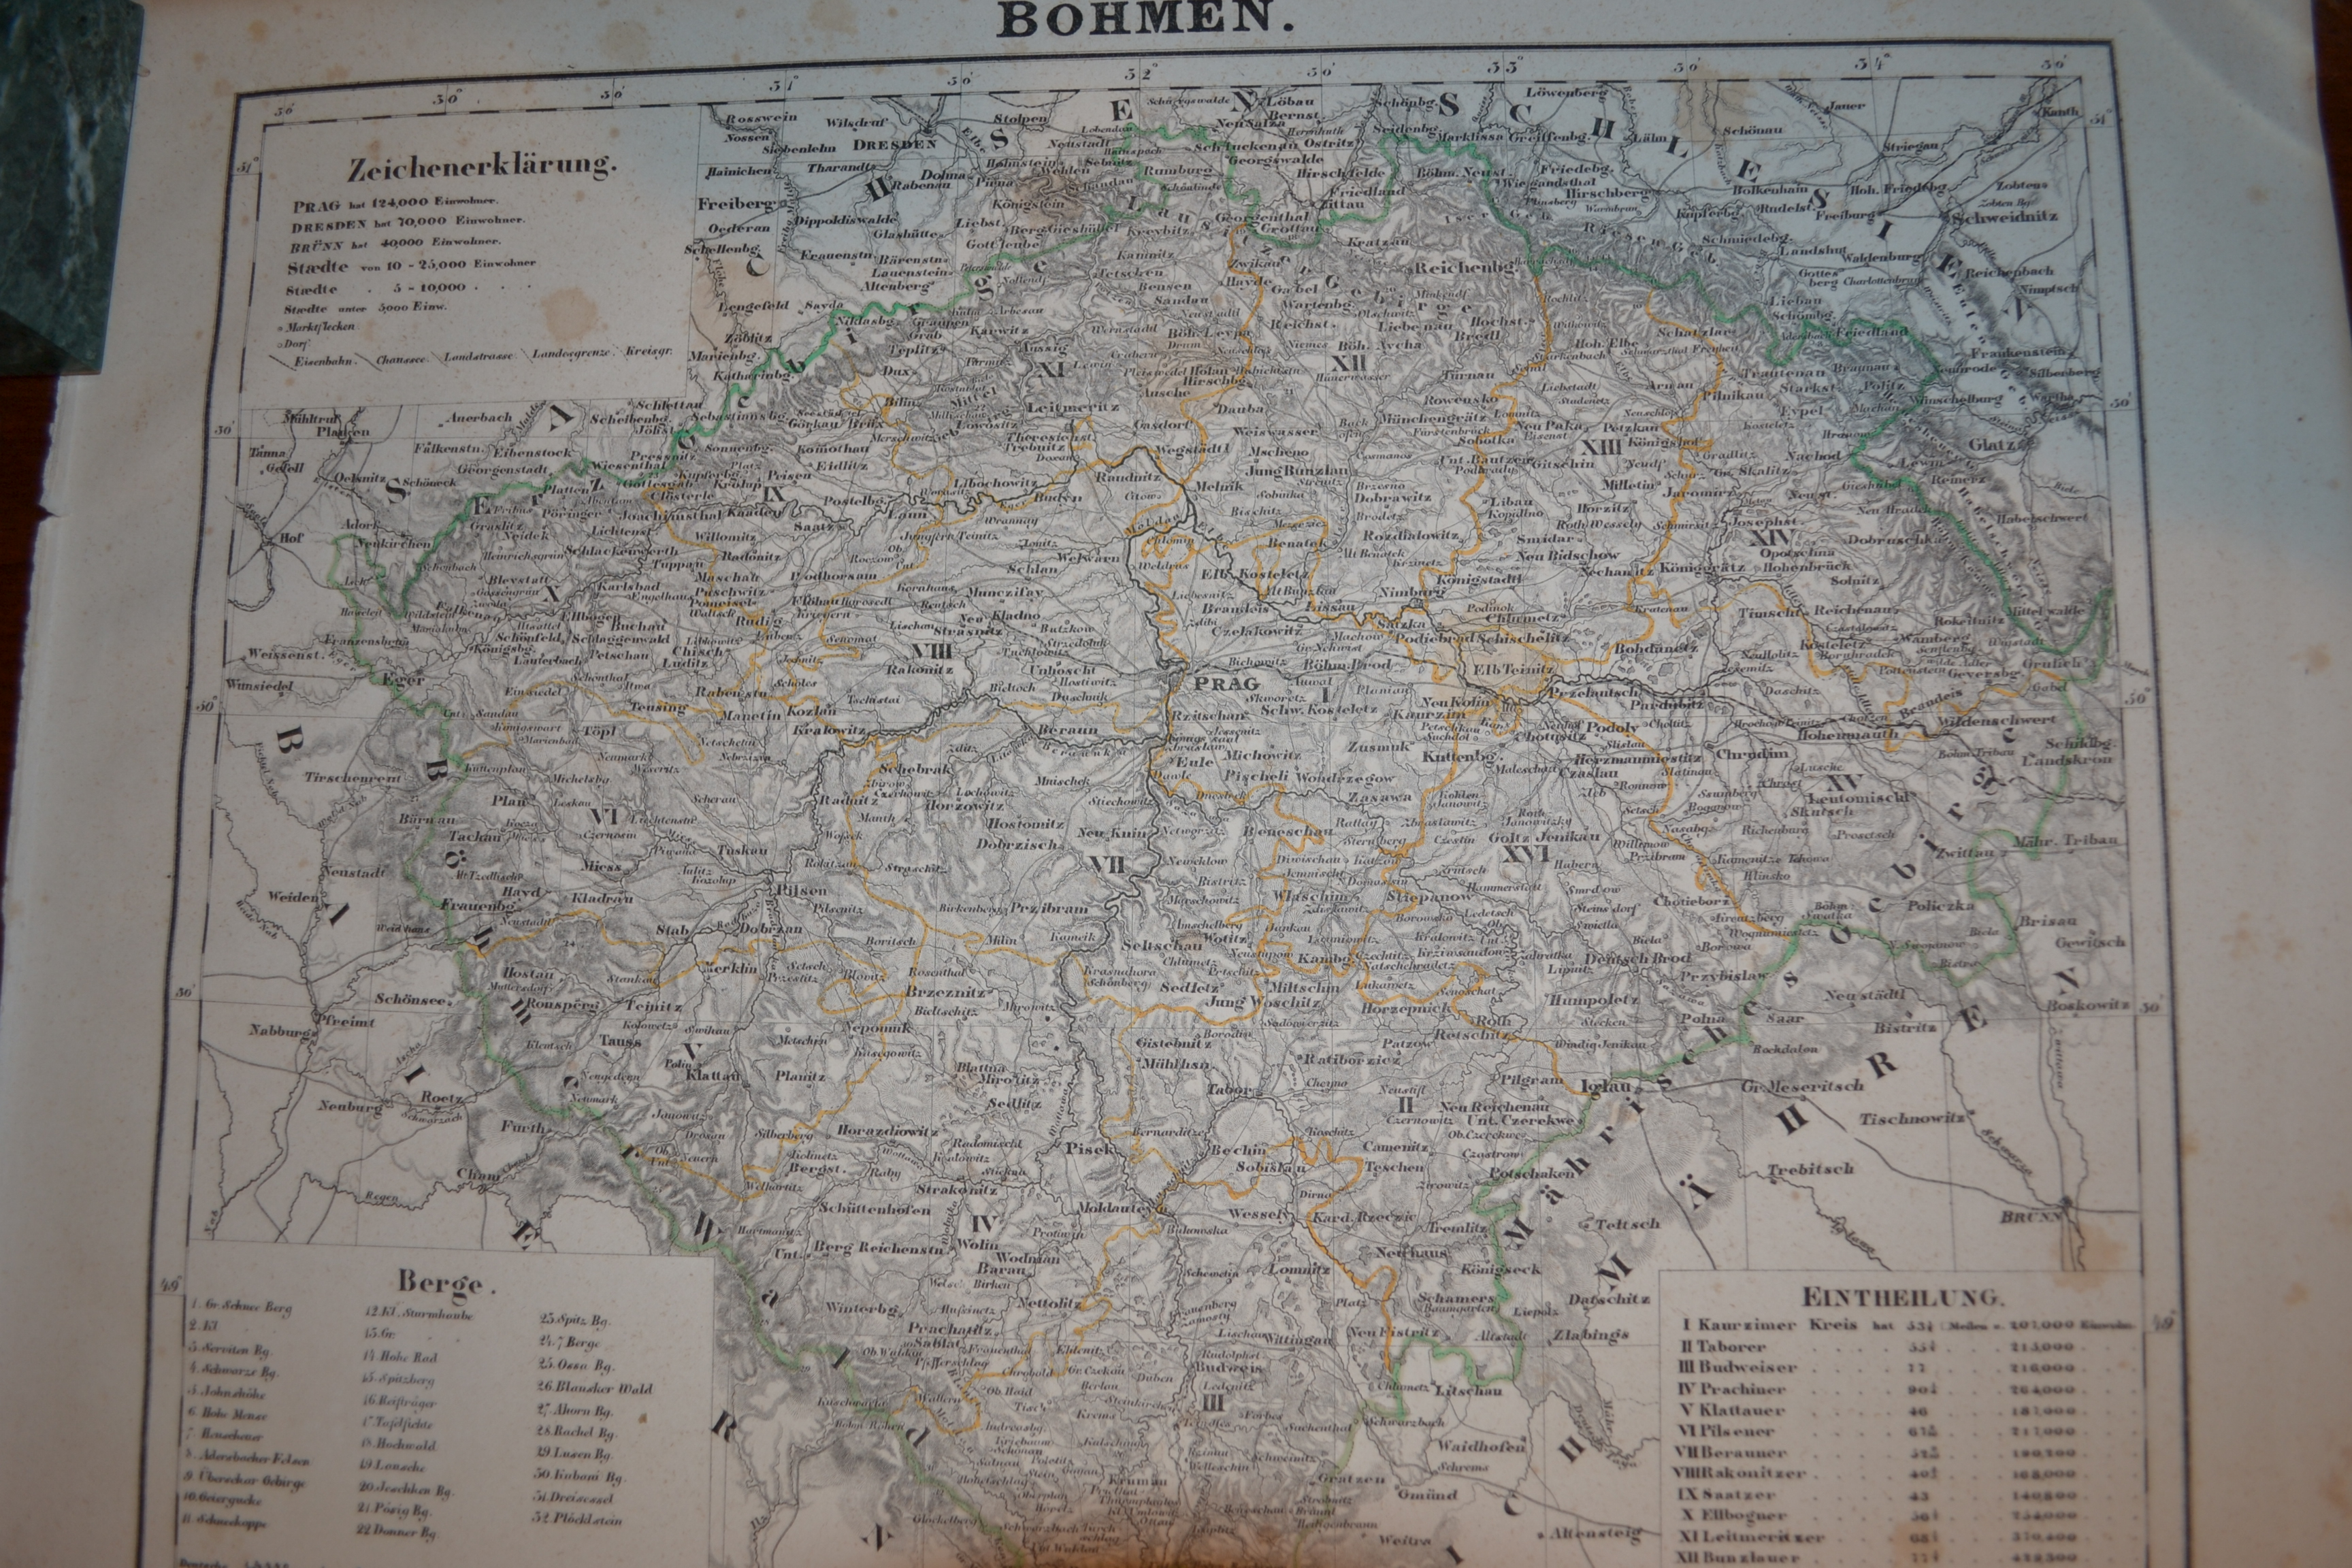 Czech Bohemian Genealogy Knowledge Hub Onward To Our Past